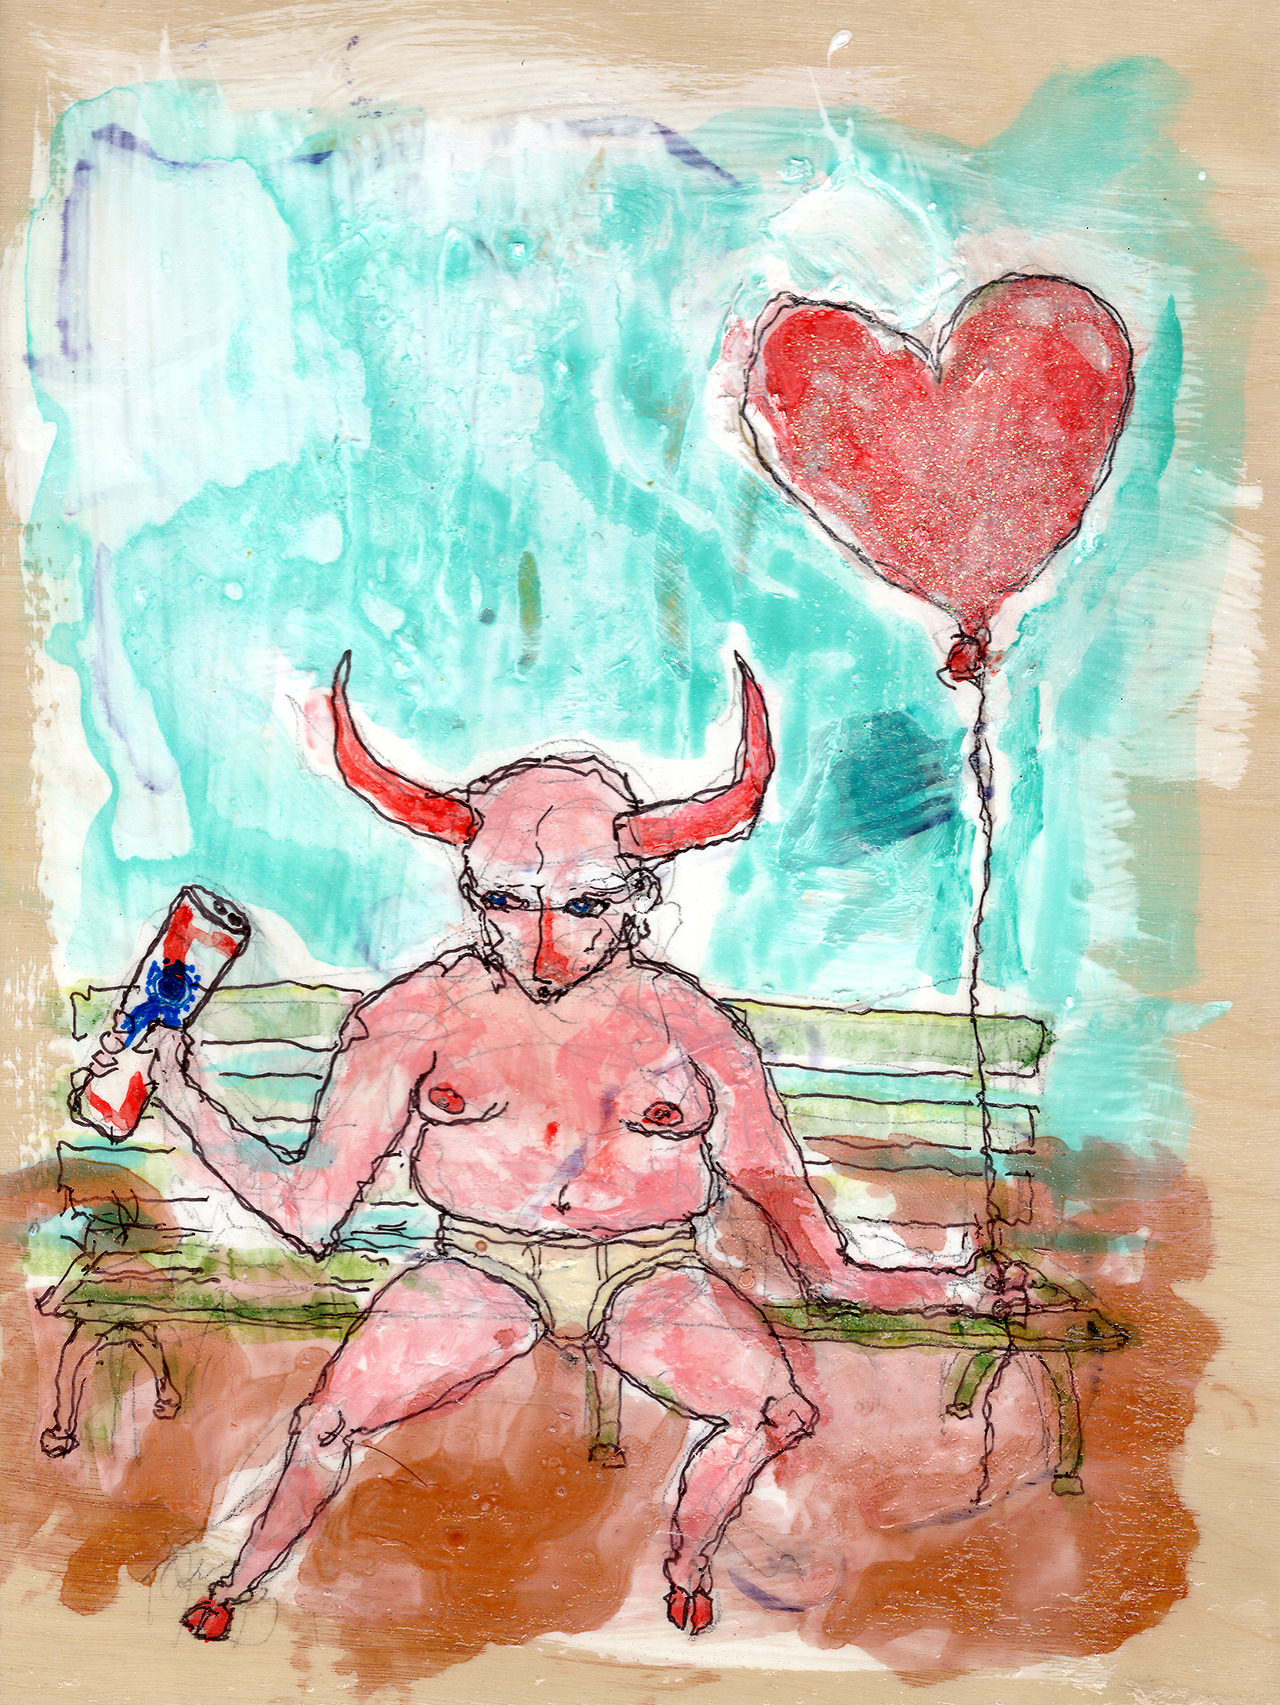 11/2/13 - The Devil You Know. Yeah, underwear. Hearts. PBR. this one has it all.  I have a kickstarter going at the moment. Please help out with it if you are able: http://www.kickstarter.com/projects/taylorwinder/the-art-book-of-the-year This piece is for sale at - http://taylorwinder.bigcartel.com Prints are available at - http://society6.com/taylorwinder